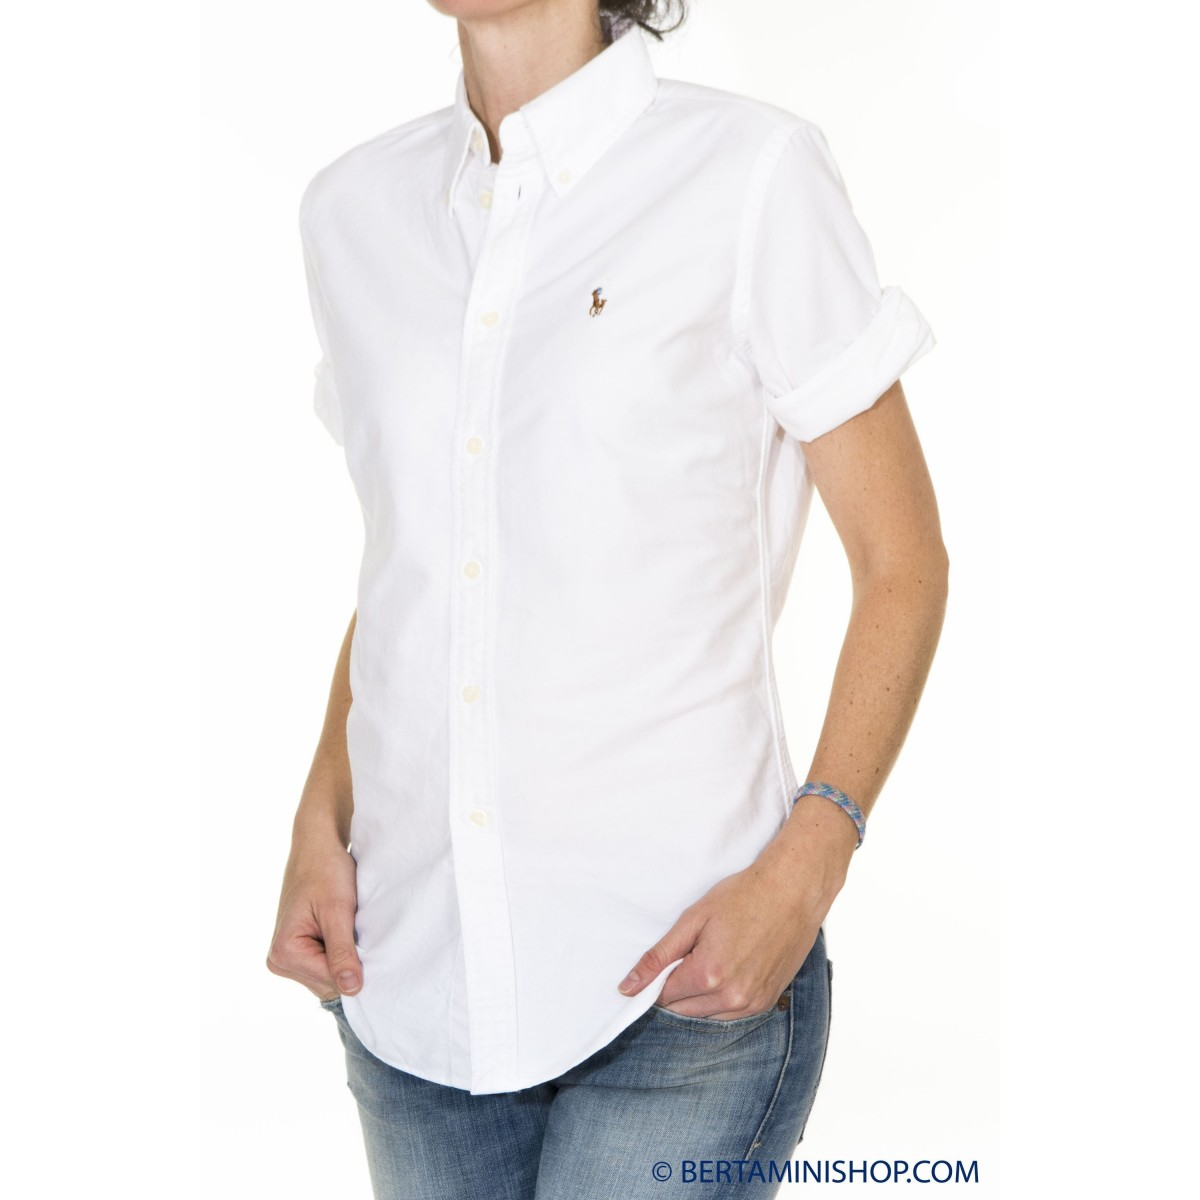 Shirt Ralph Lauren Woman  - V33Ih843Bh843 B11D1 - Bianco